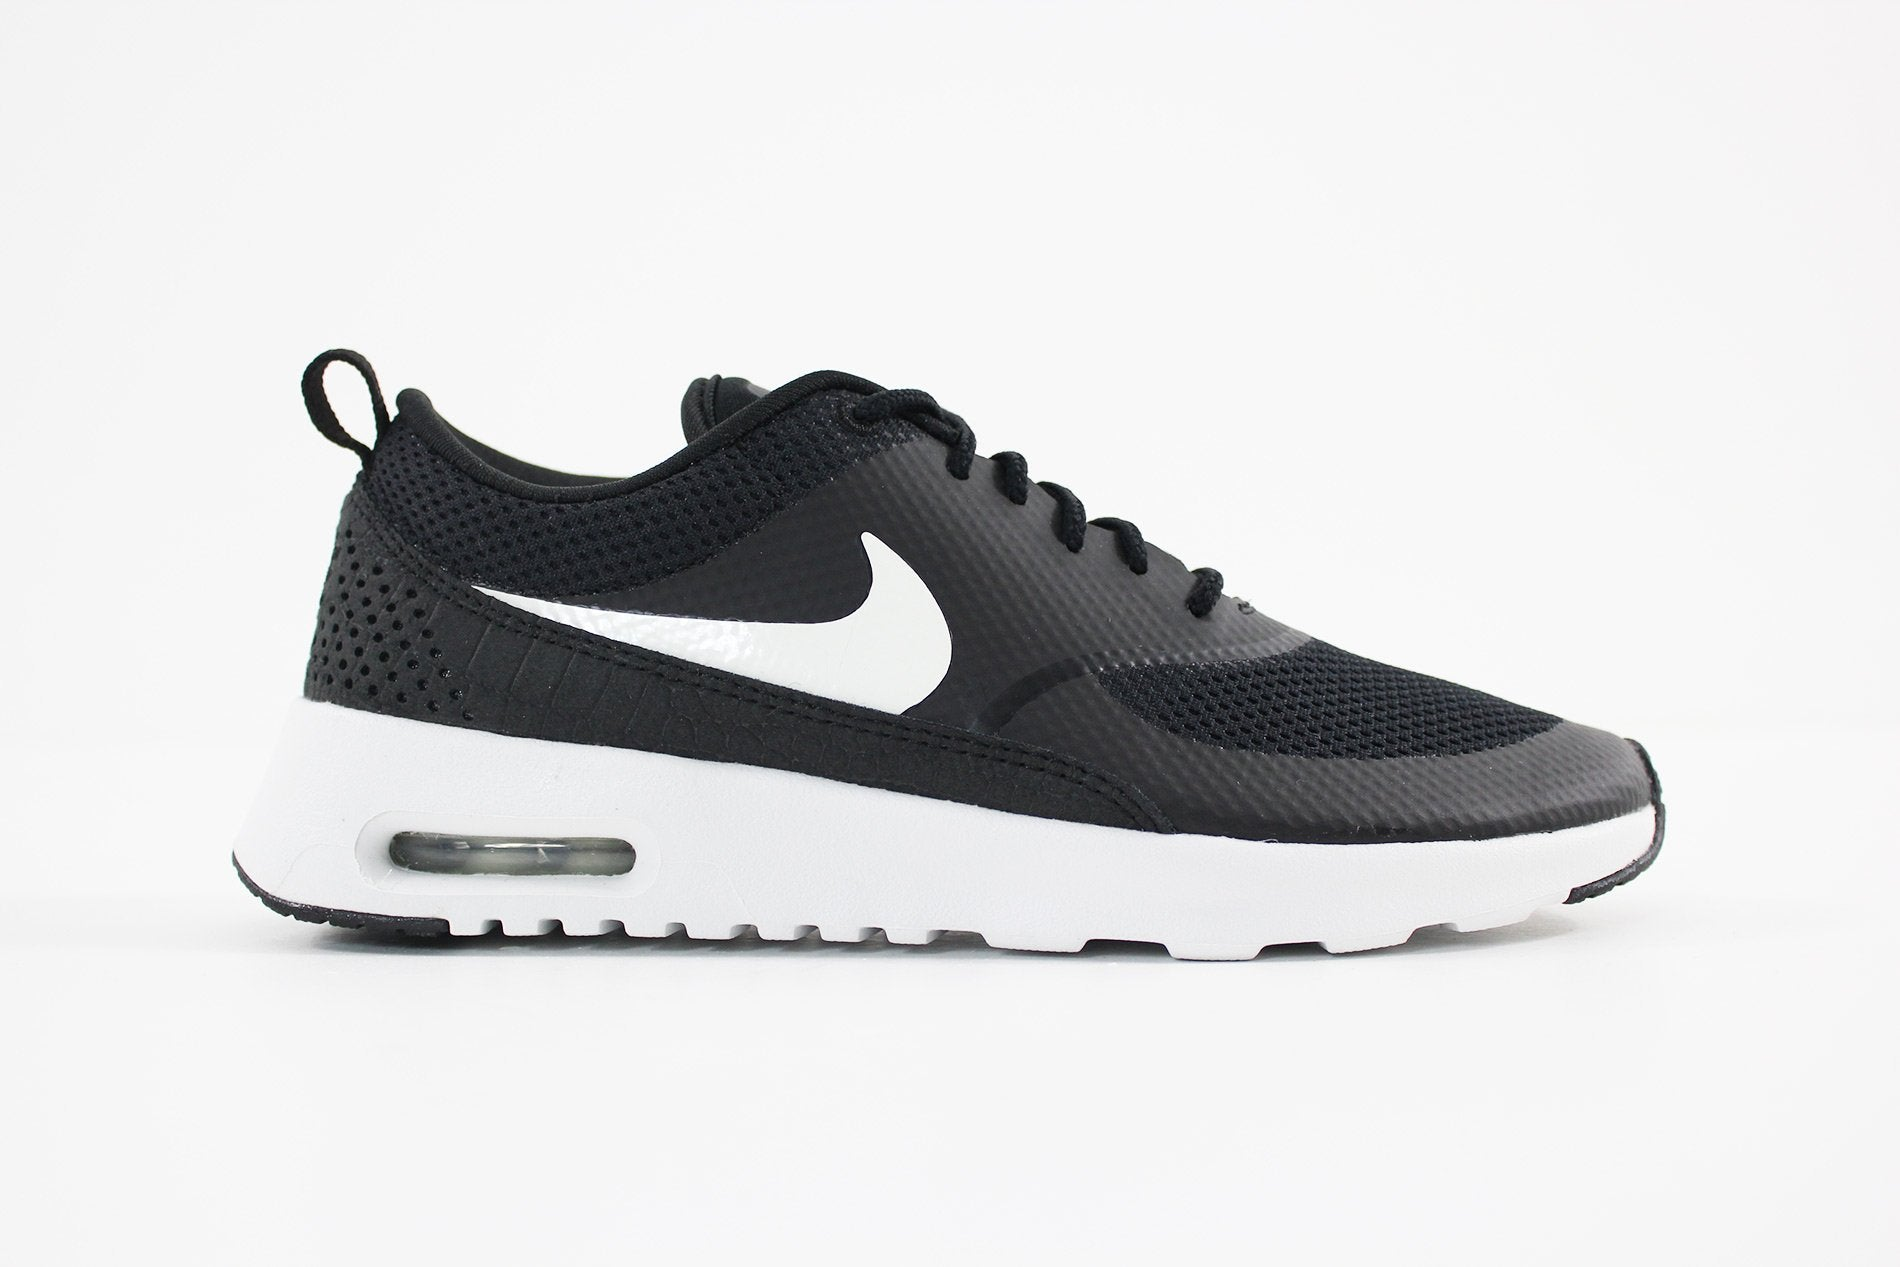 super popular 128af f9923 Nike - Womens Nike Air Max Thea Shoe (BLACK SUMMIT WHITE) 599409-. Nike - Womens  Nike Air Max Thea Shoe (BLACK SUMMIT WHITE) 599409-